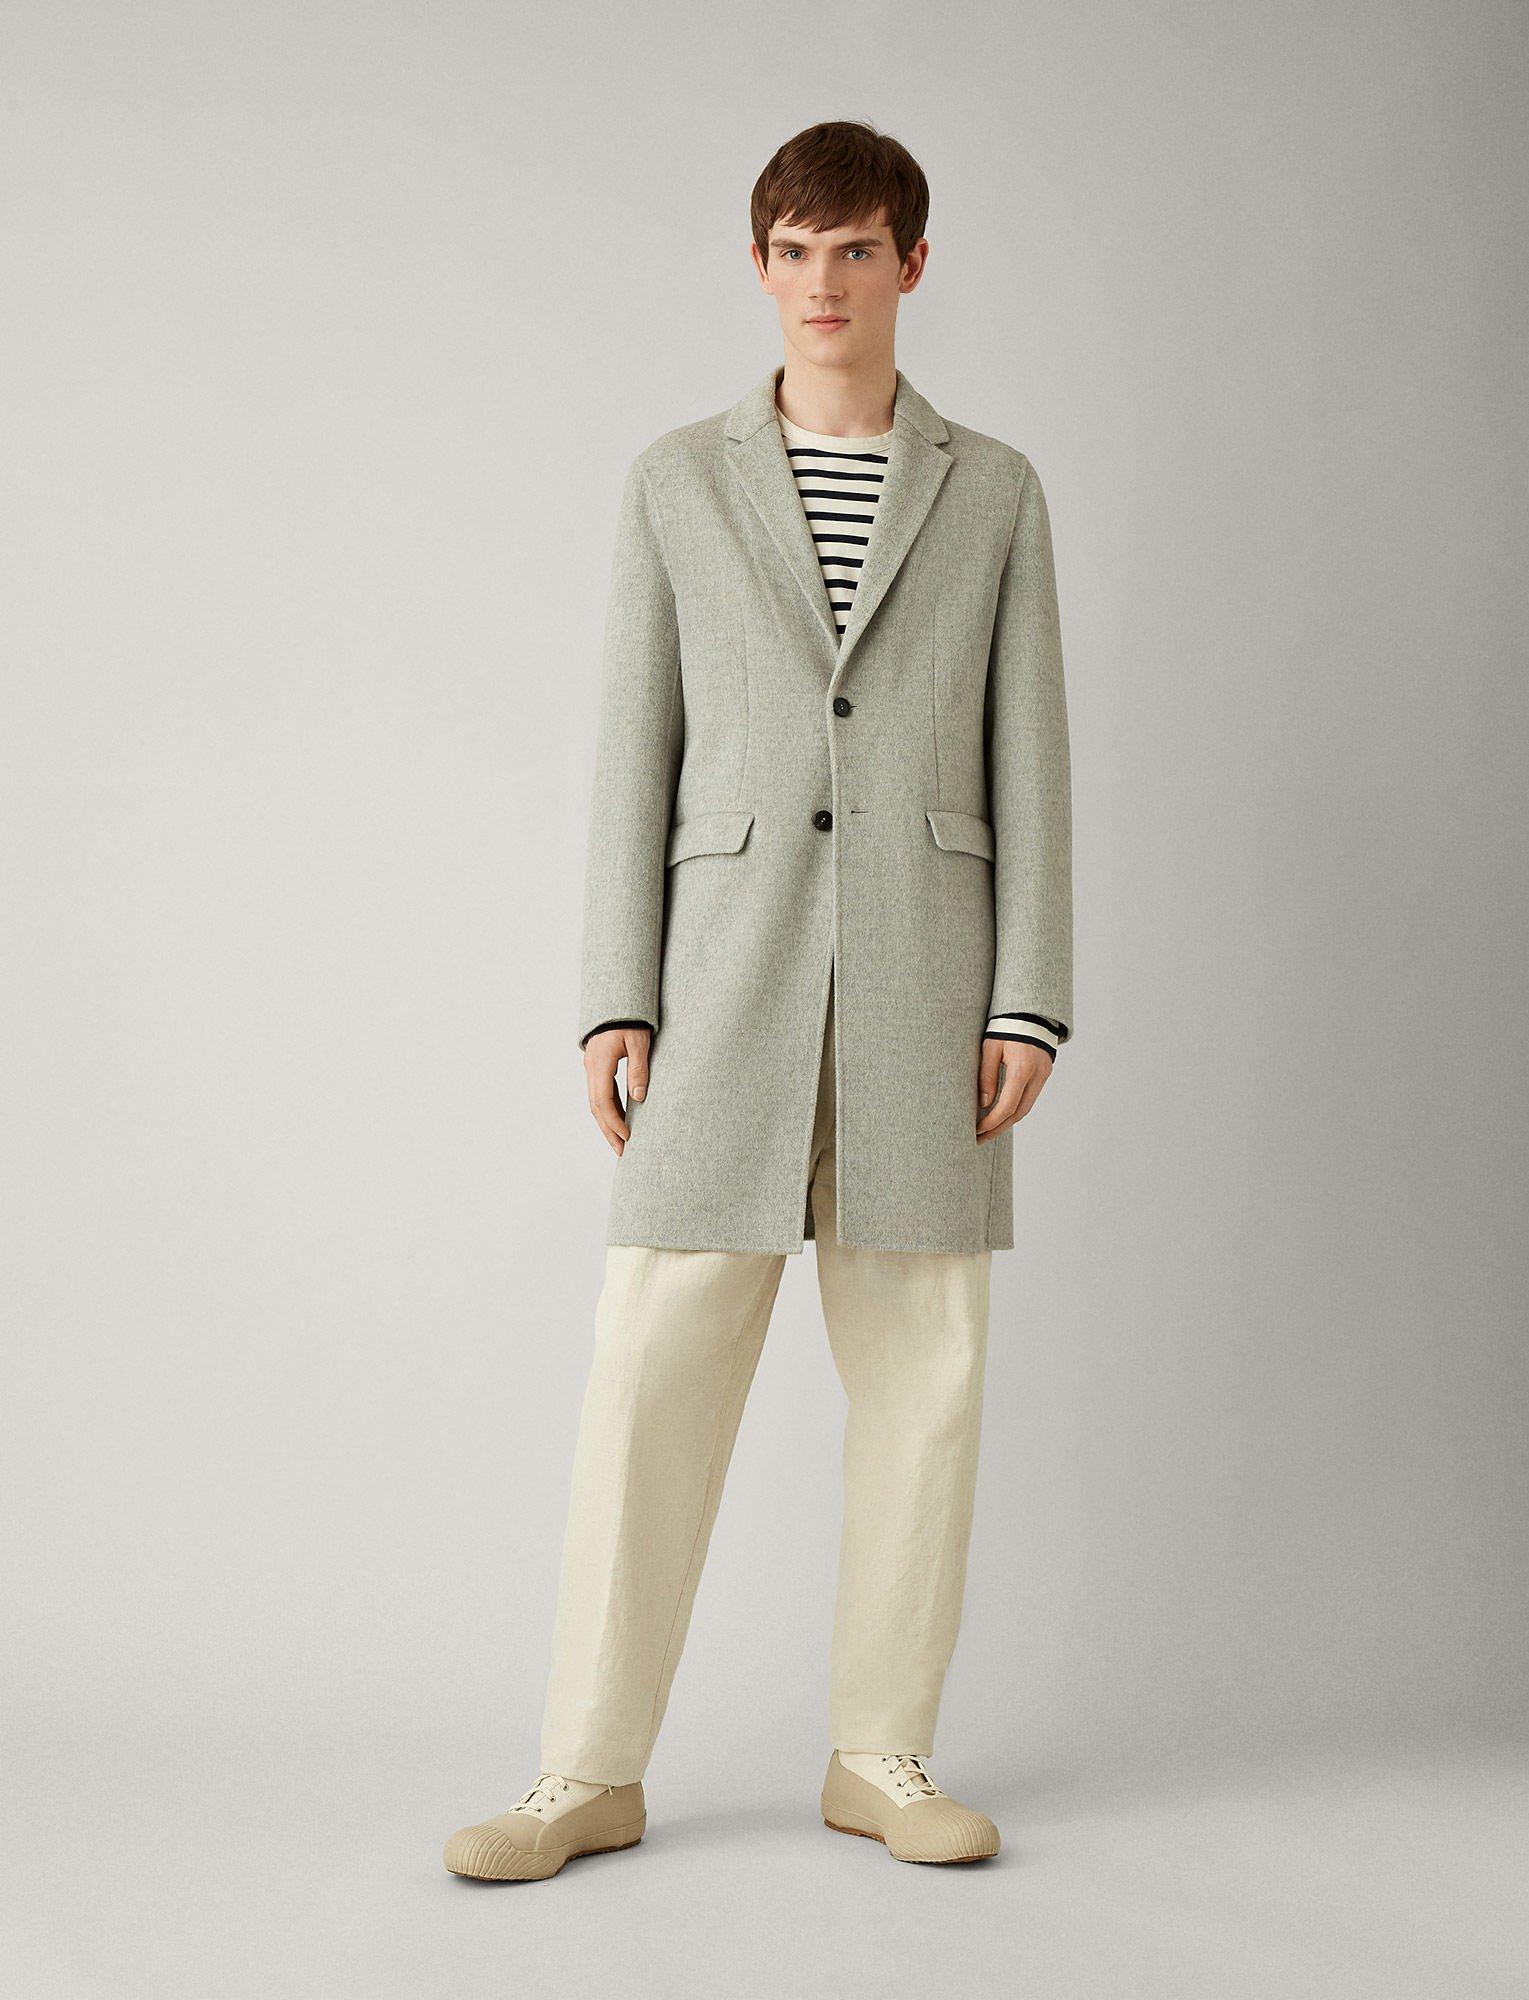 741016ee93b7 Lyst - JOSEPH Armand Feather Double Cashmere Coat in Gray for Men